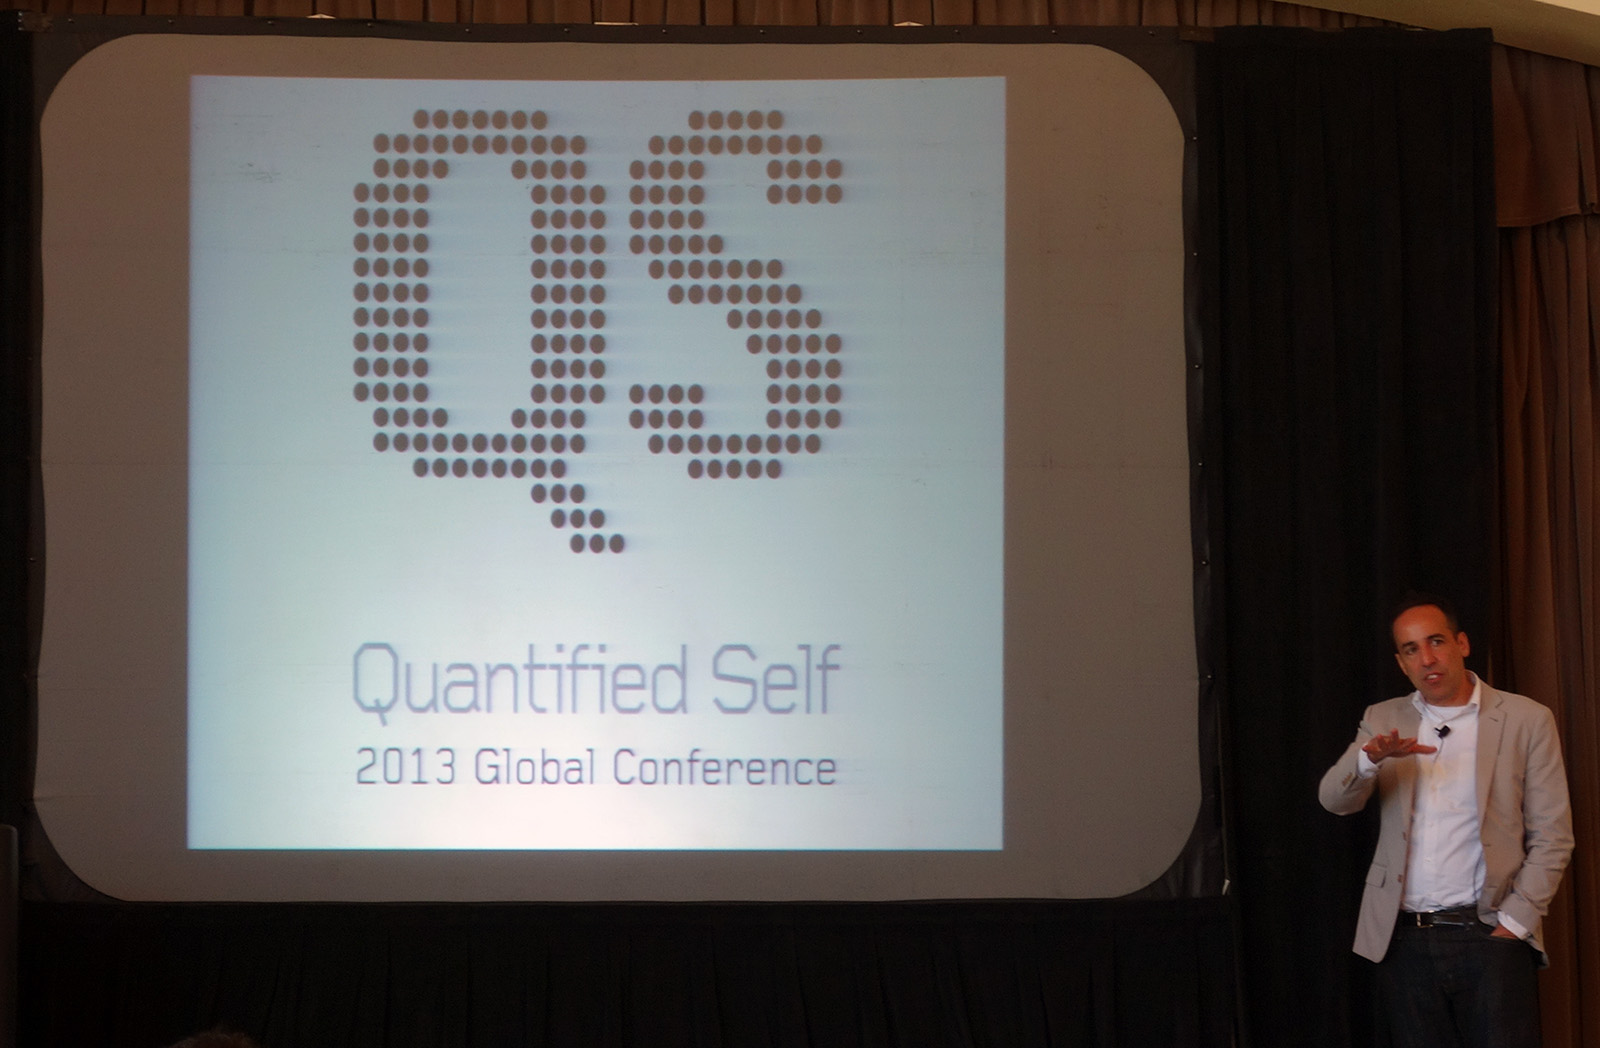 My Experience and Highlights from the 2013 Quantified Self Global Conference